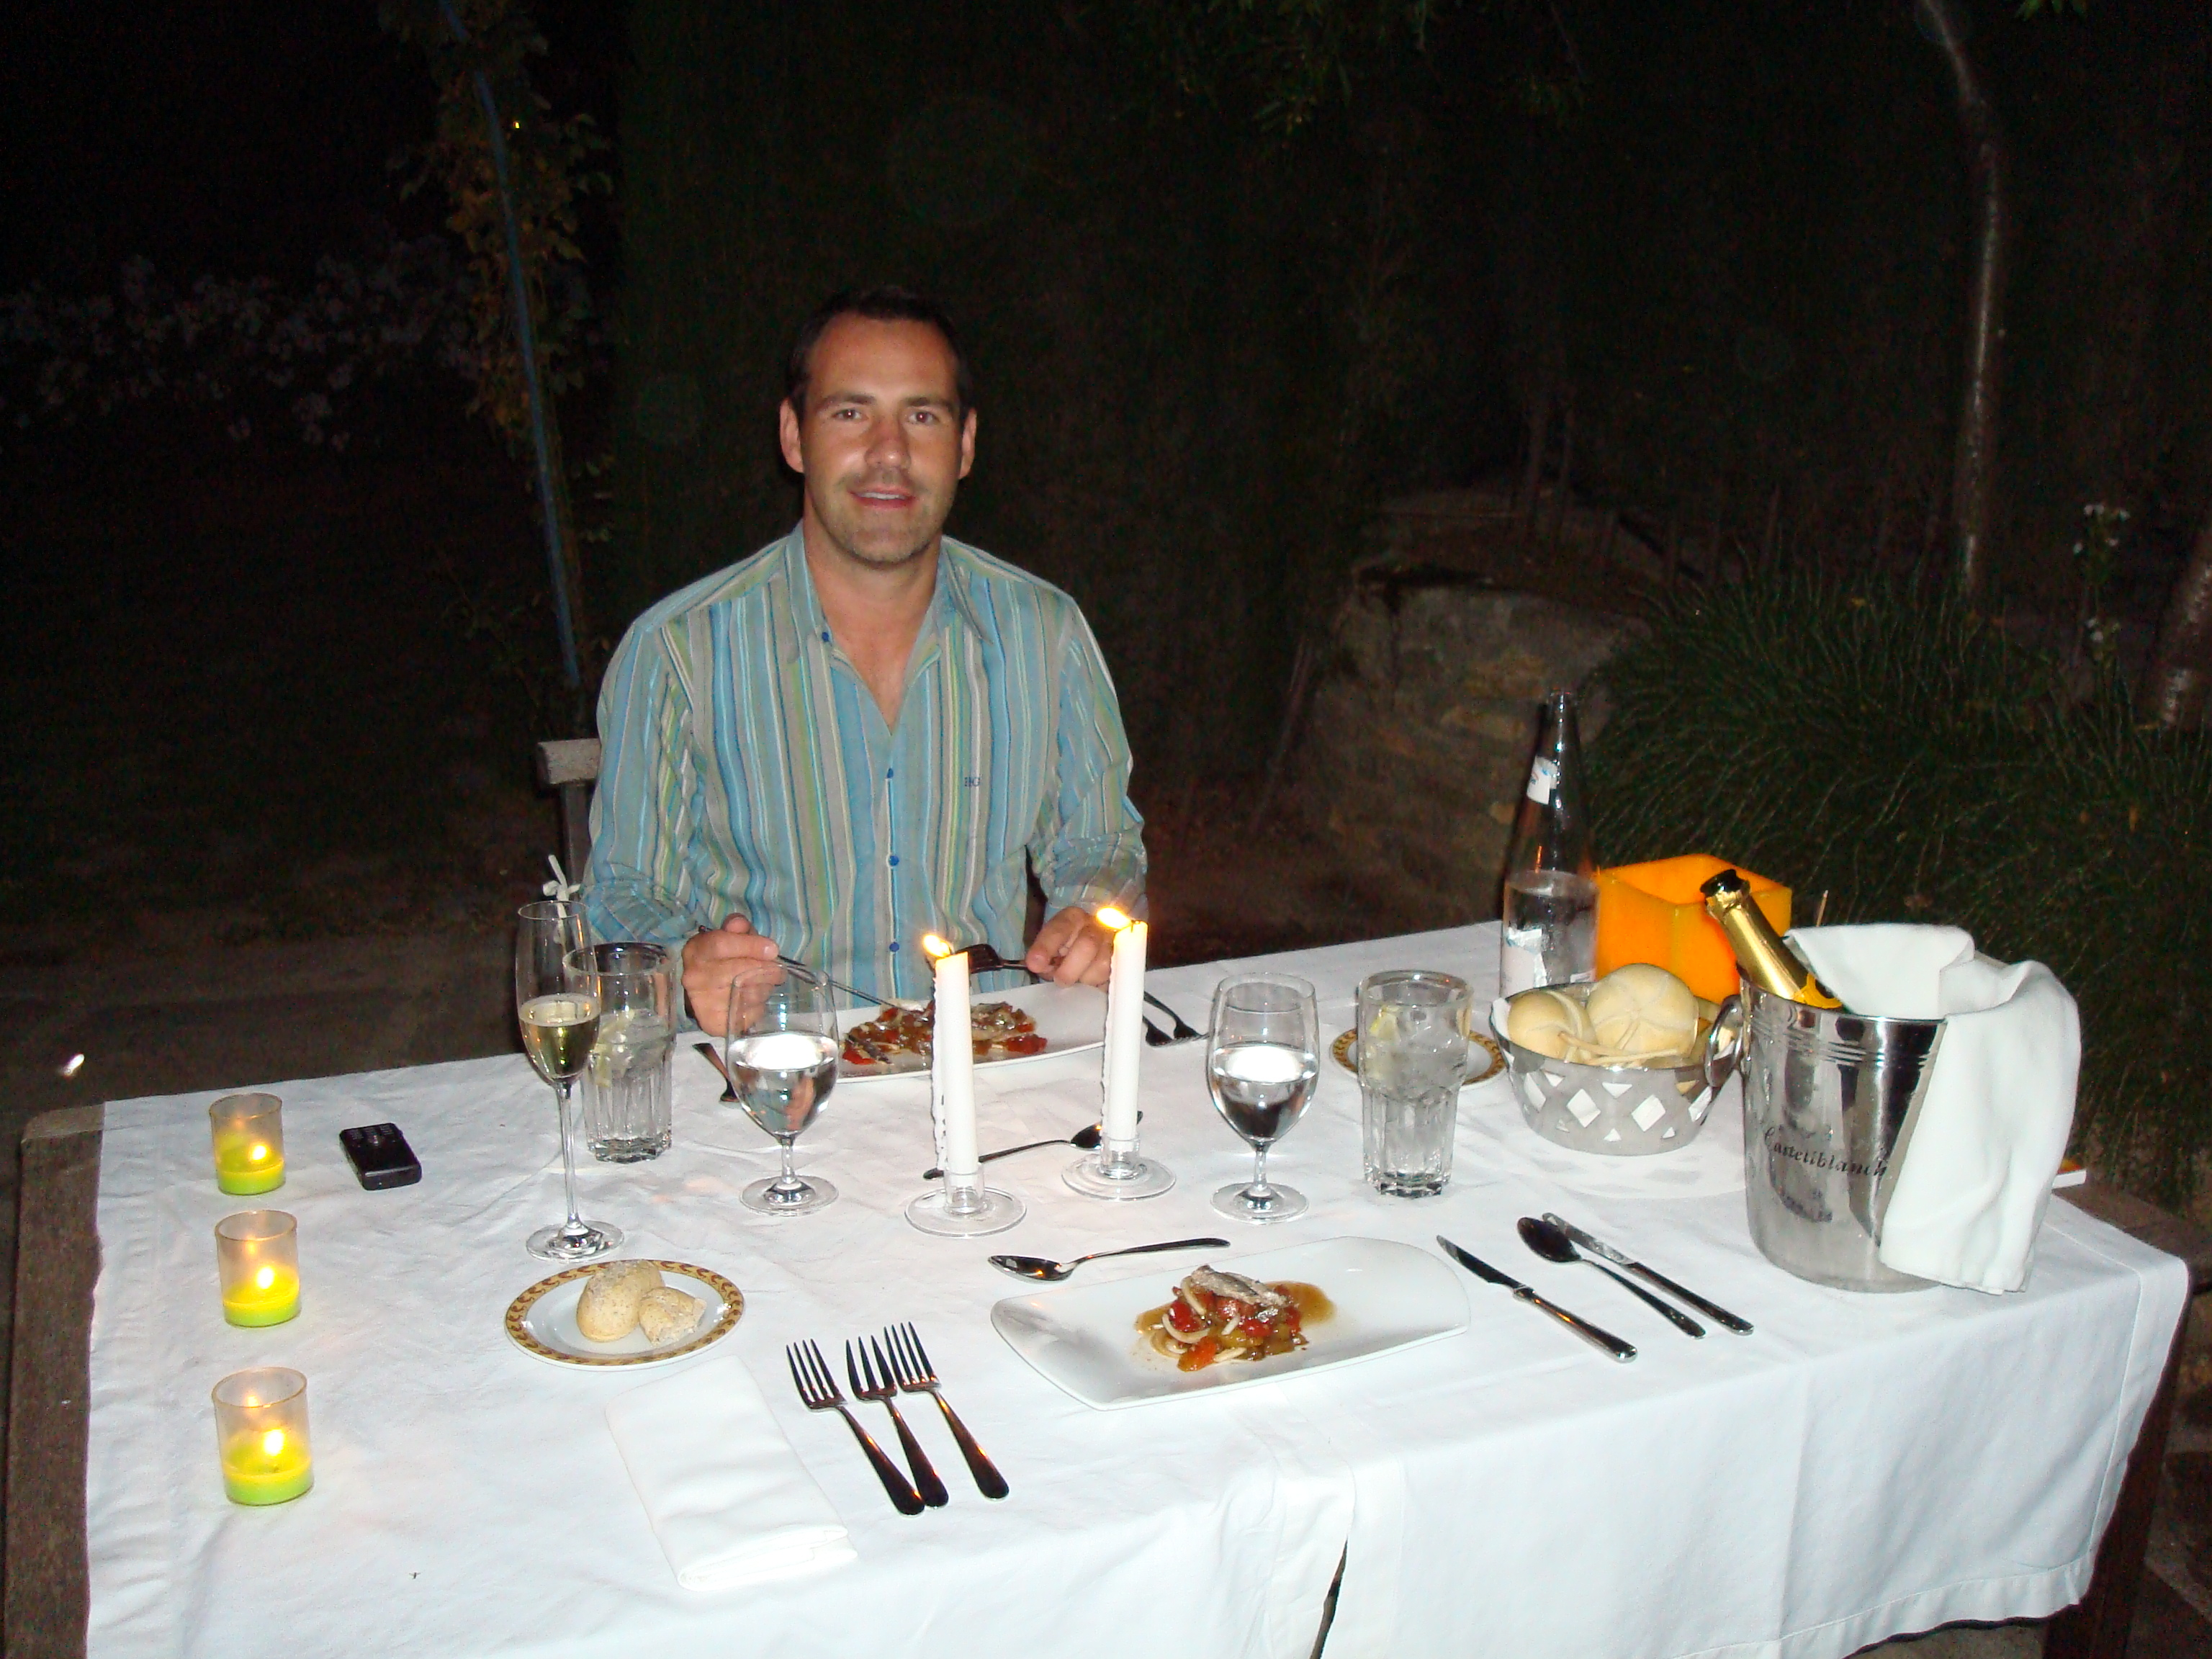 All about me and the food - private dining at El Juncal Hotel, Ronda